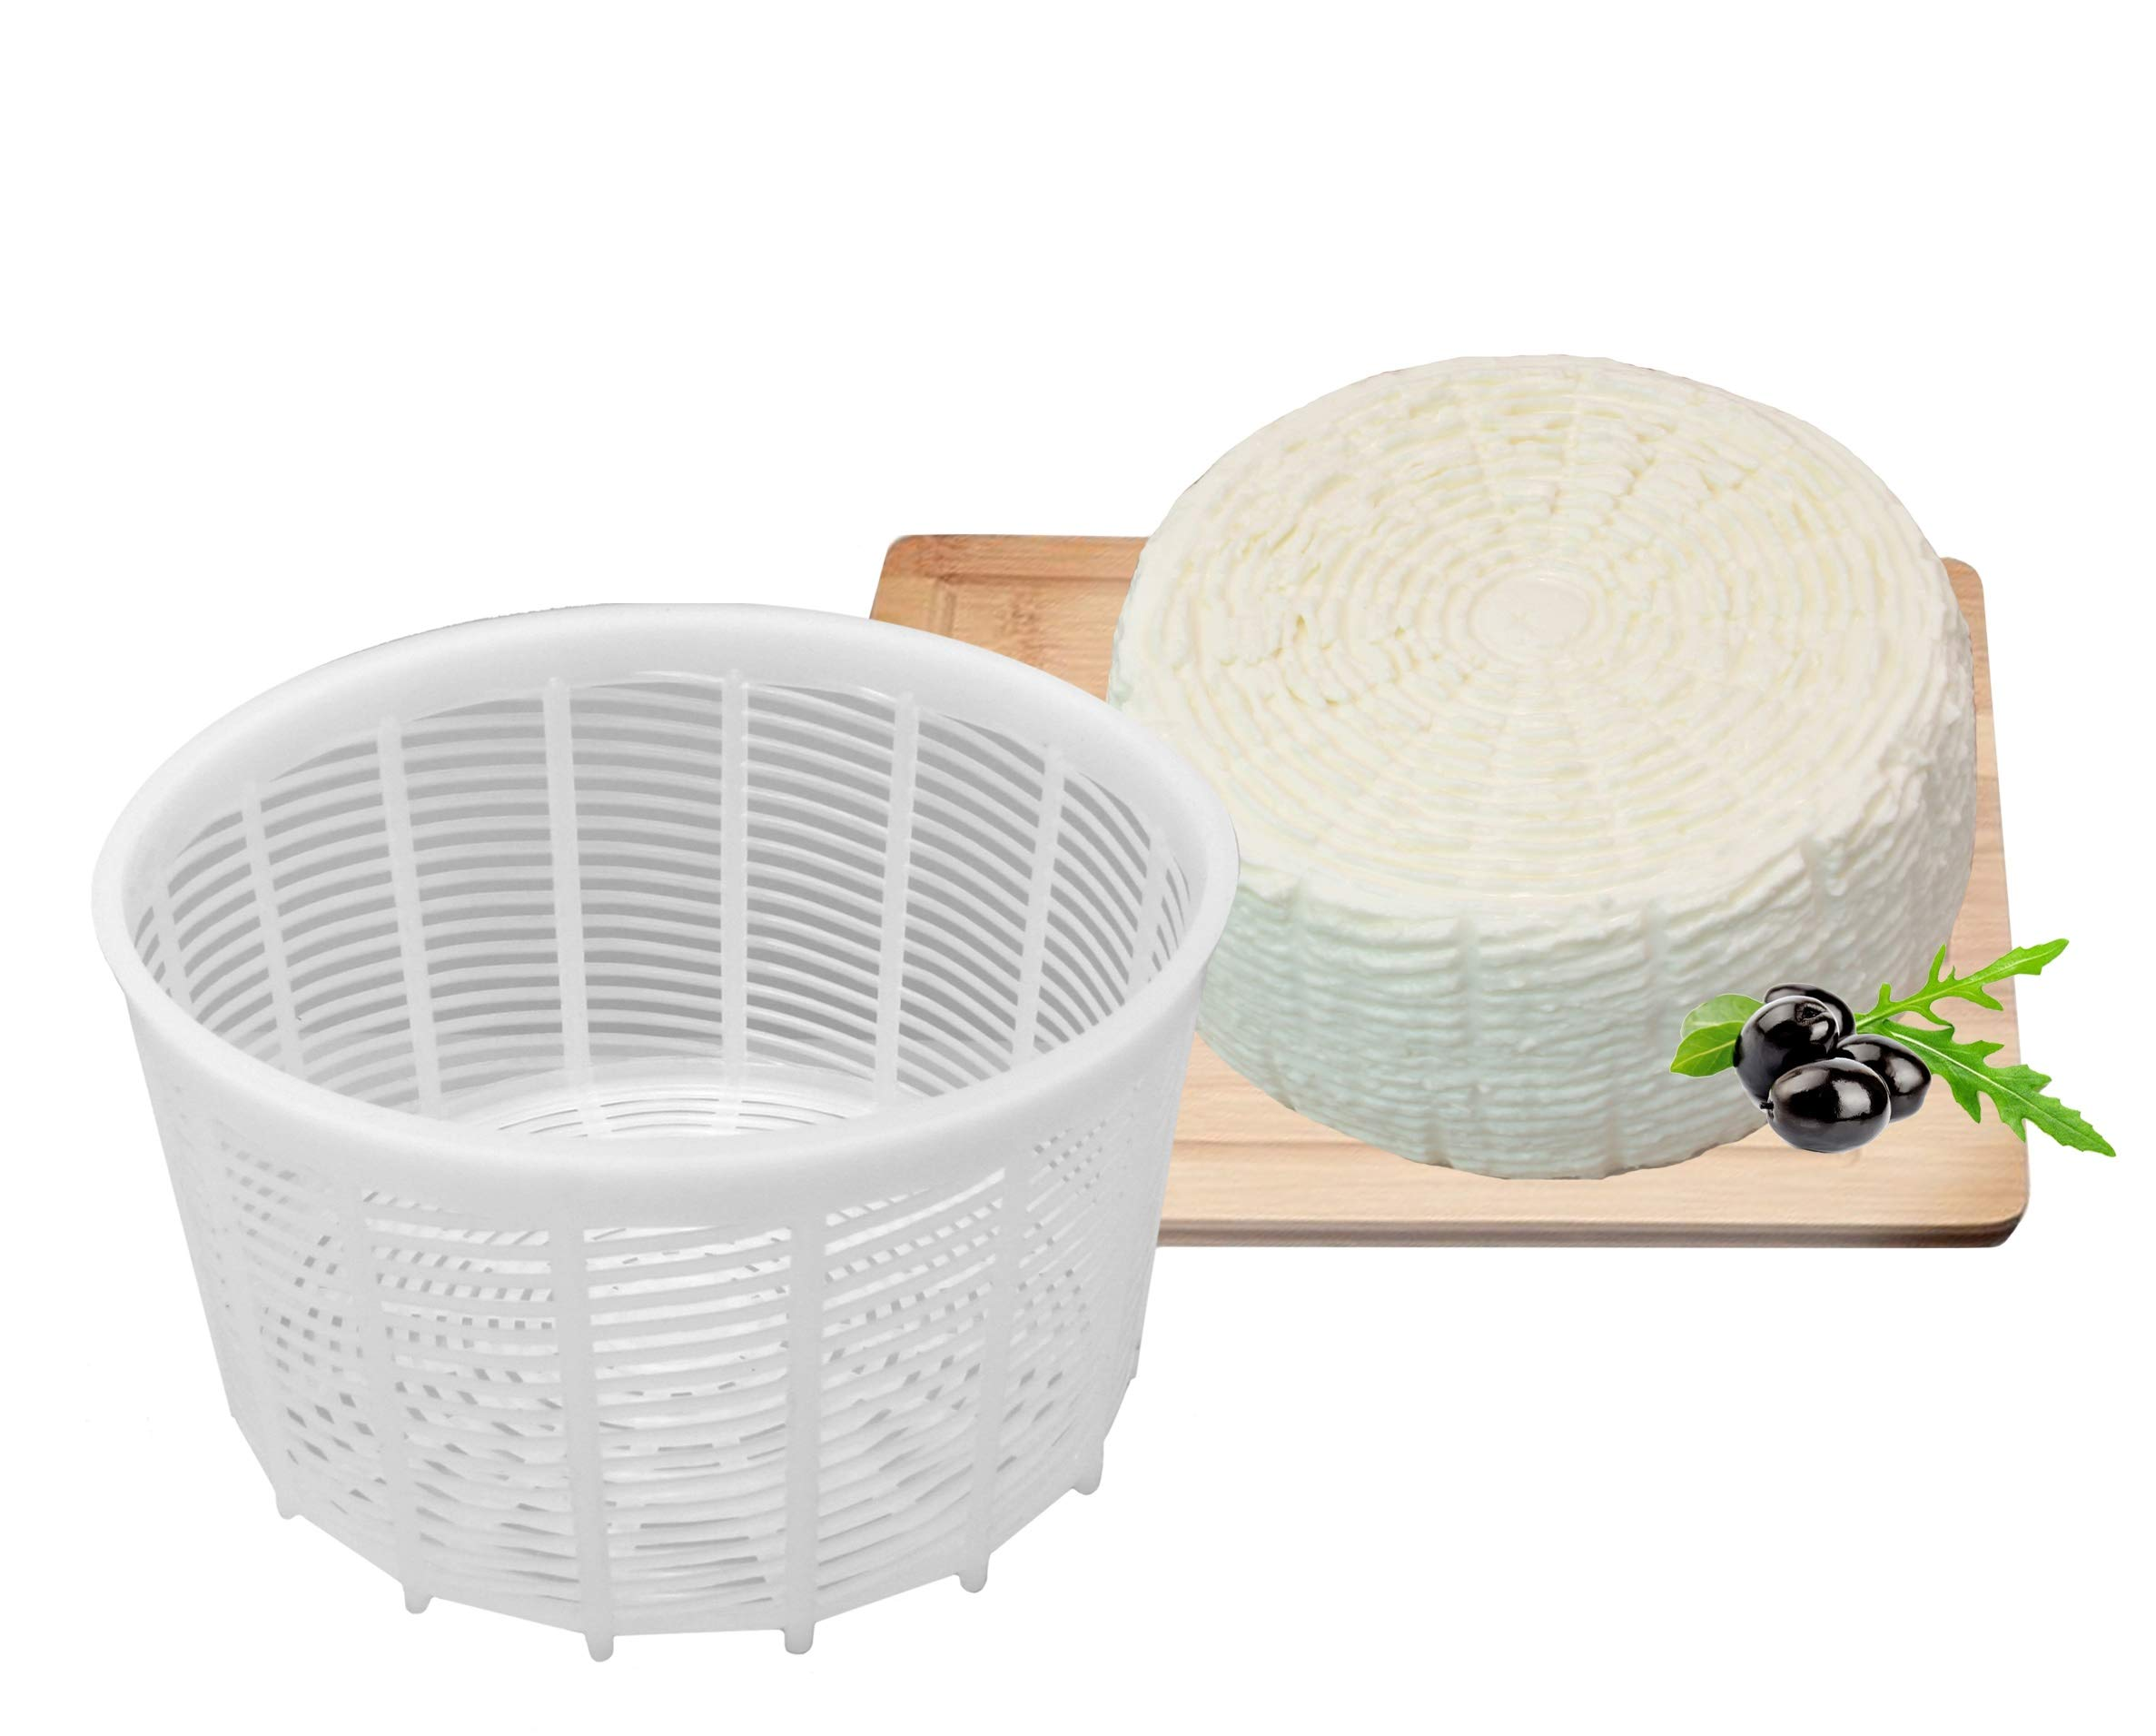 Basic Cheese Mold, soft & hard cheeses Hard Cheese Butter Punched Making Mold 1.15 liters by PetriStor